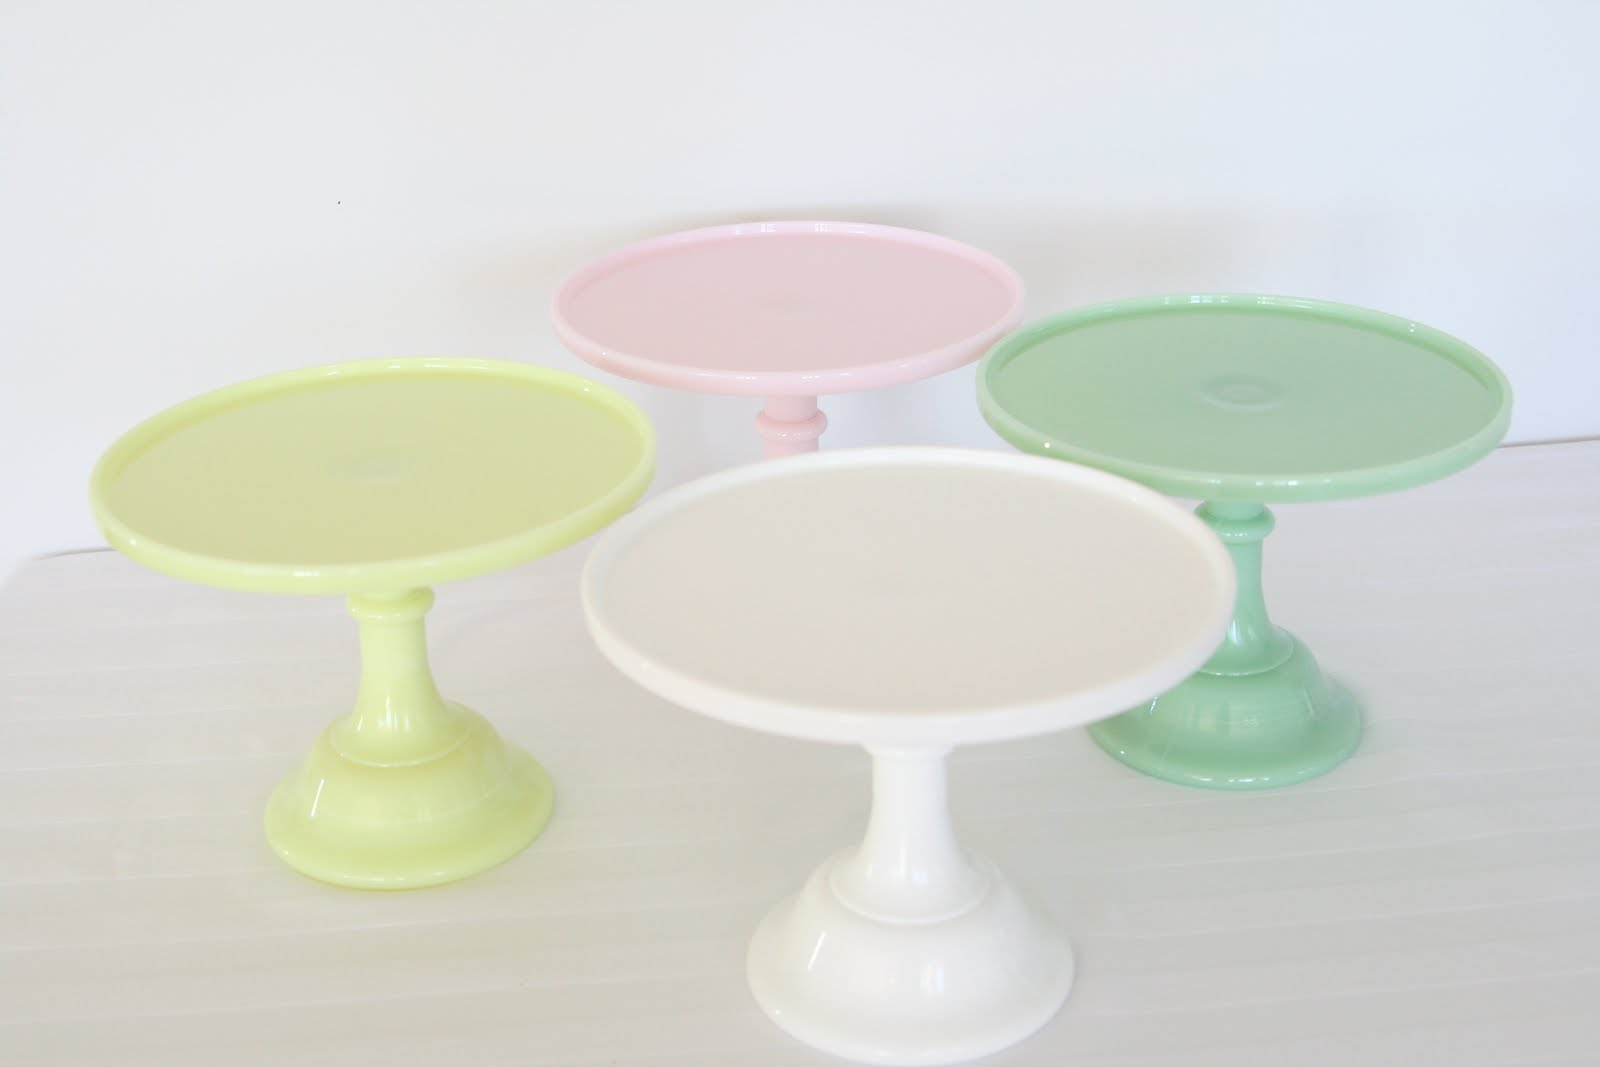 new cake stands in the store